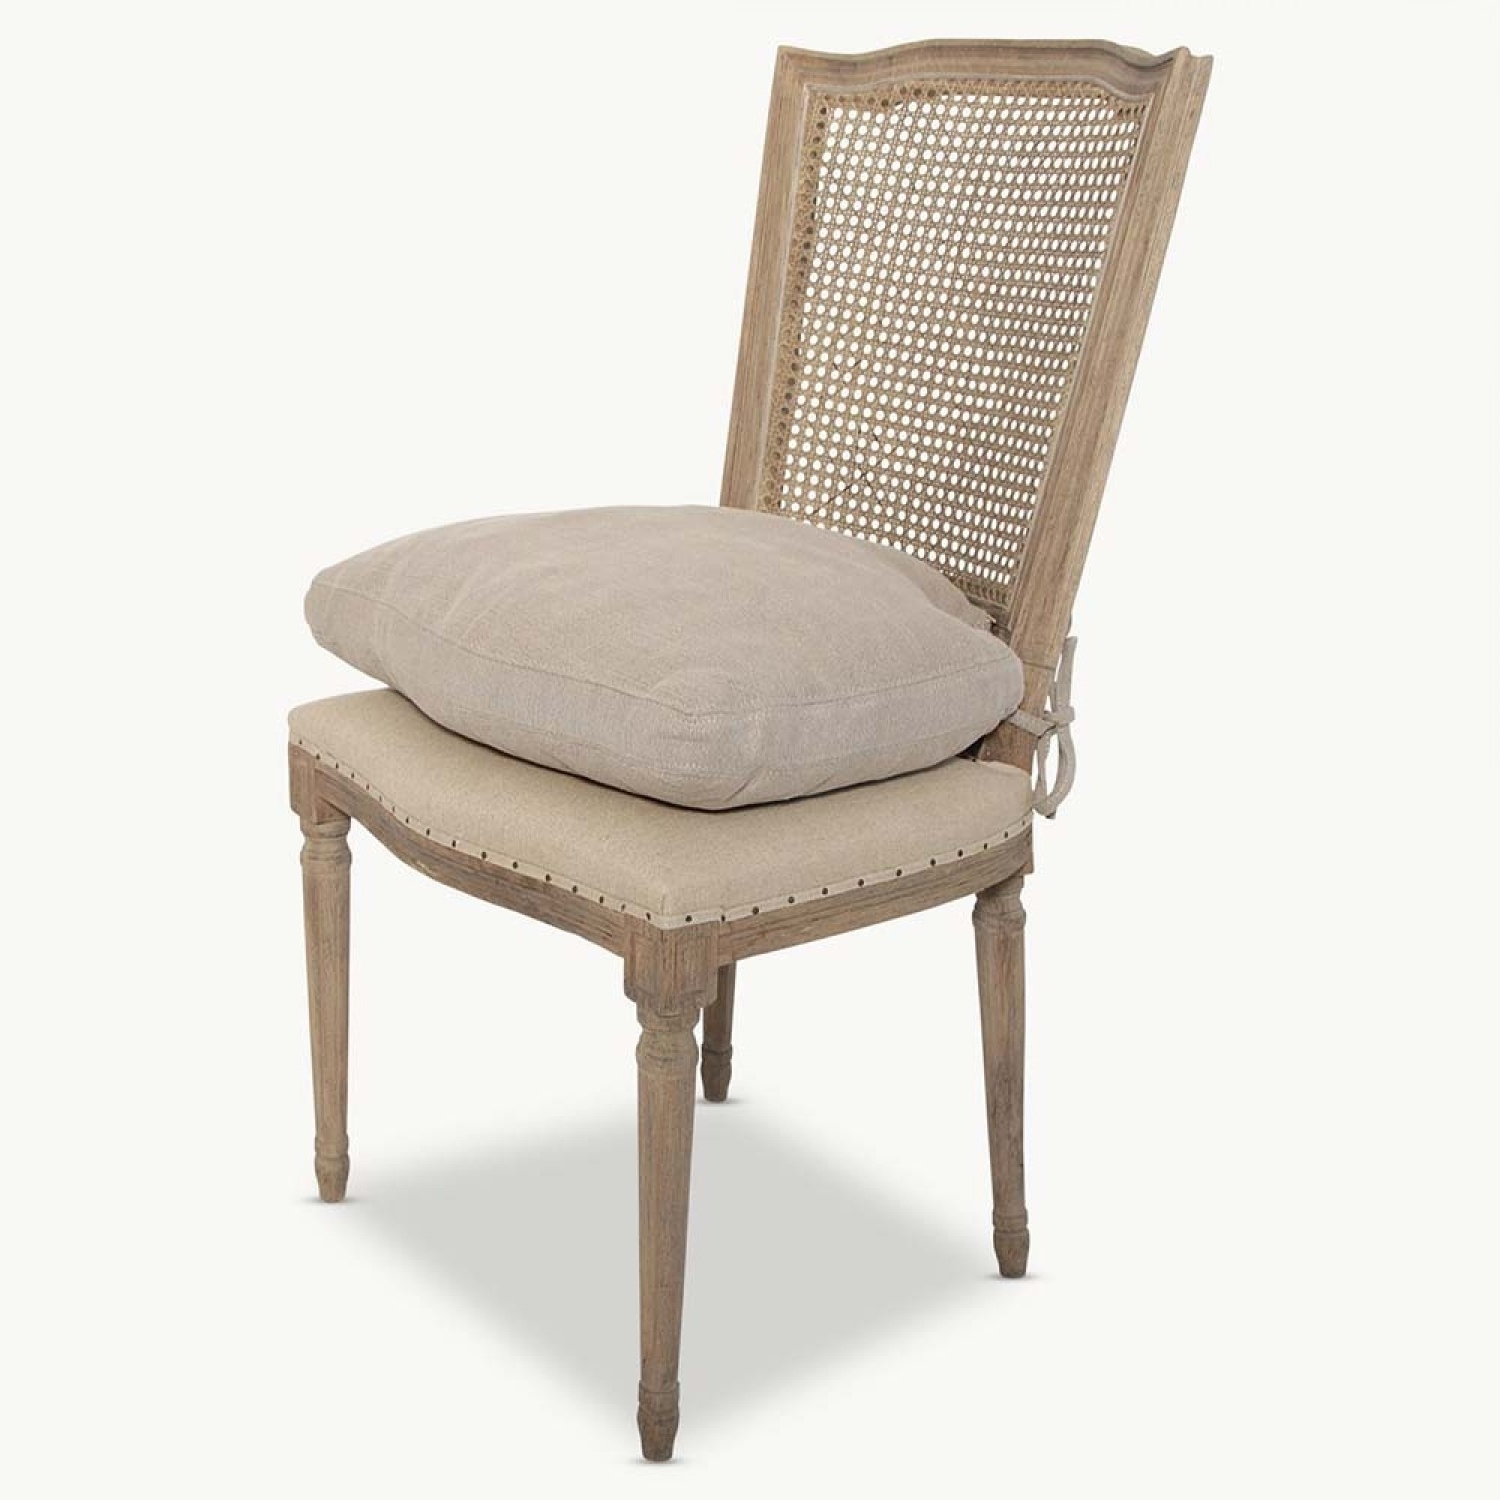 Widely Used Kent Dining Chairs Inside Kent Dining Chair (View 4 of 20)